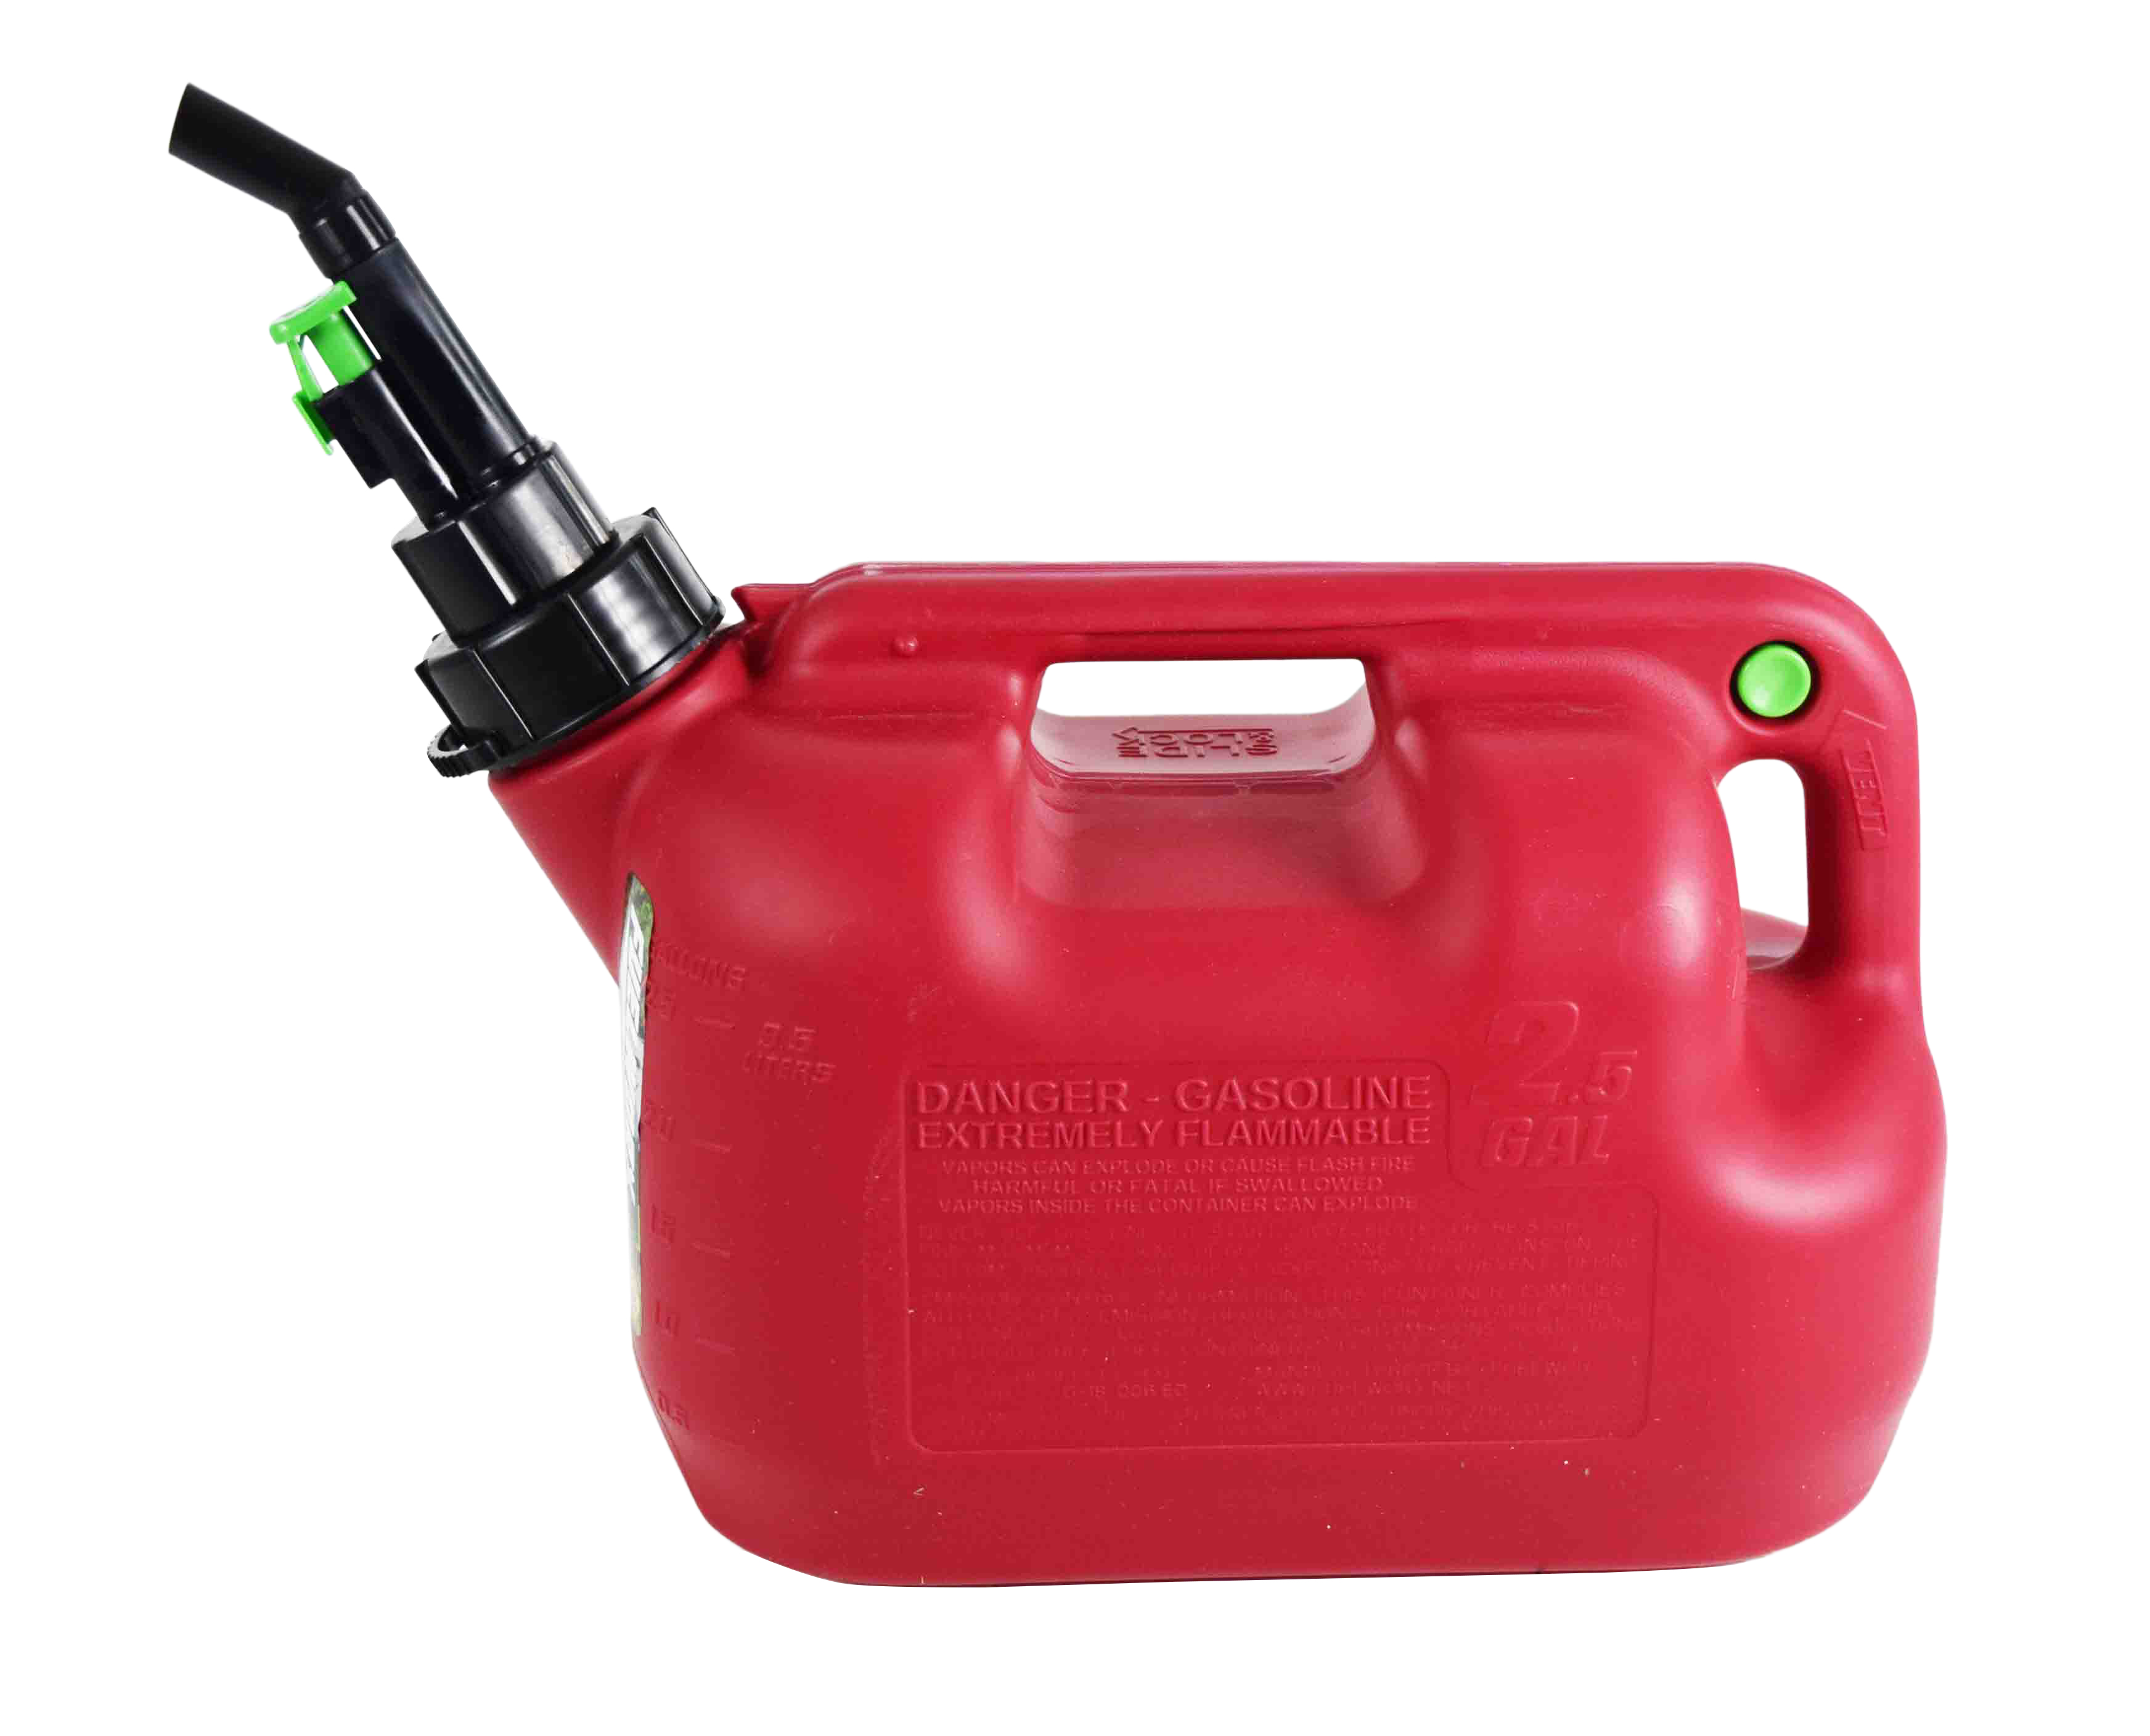 Fuelworx-Red-2.5-Gallon-Stackable-Fast-Pour-Gas-Fuel-Cans-CARB-Compliant-Made-in-The-USA-2.5-Gallon-Gas-2-Pack-image-4